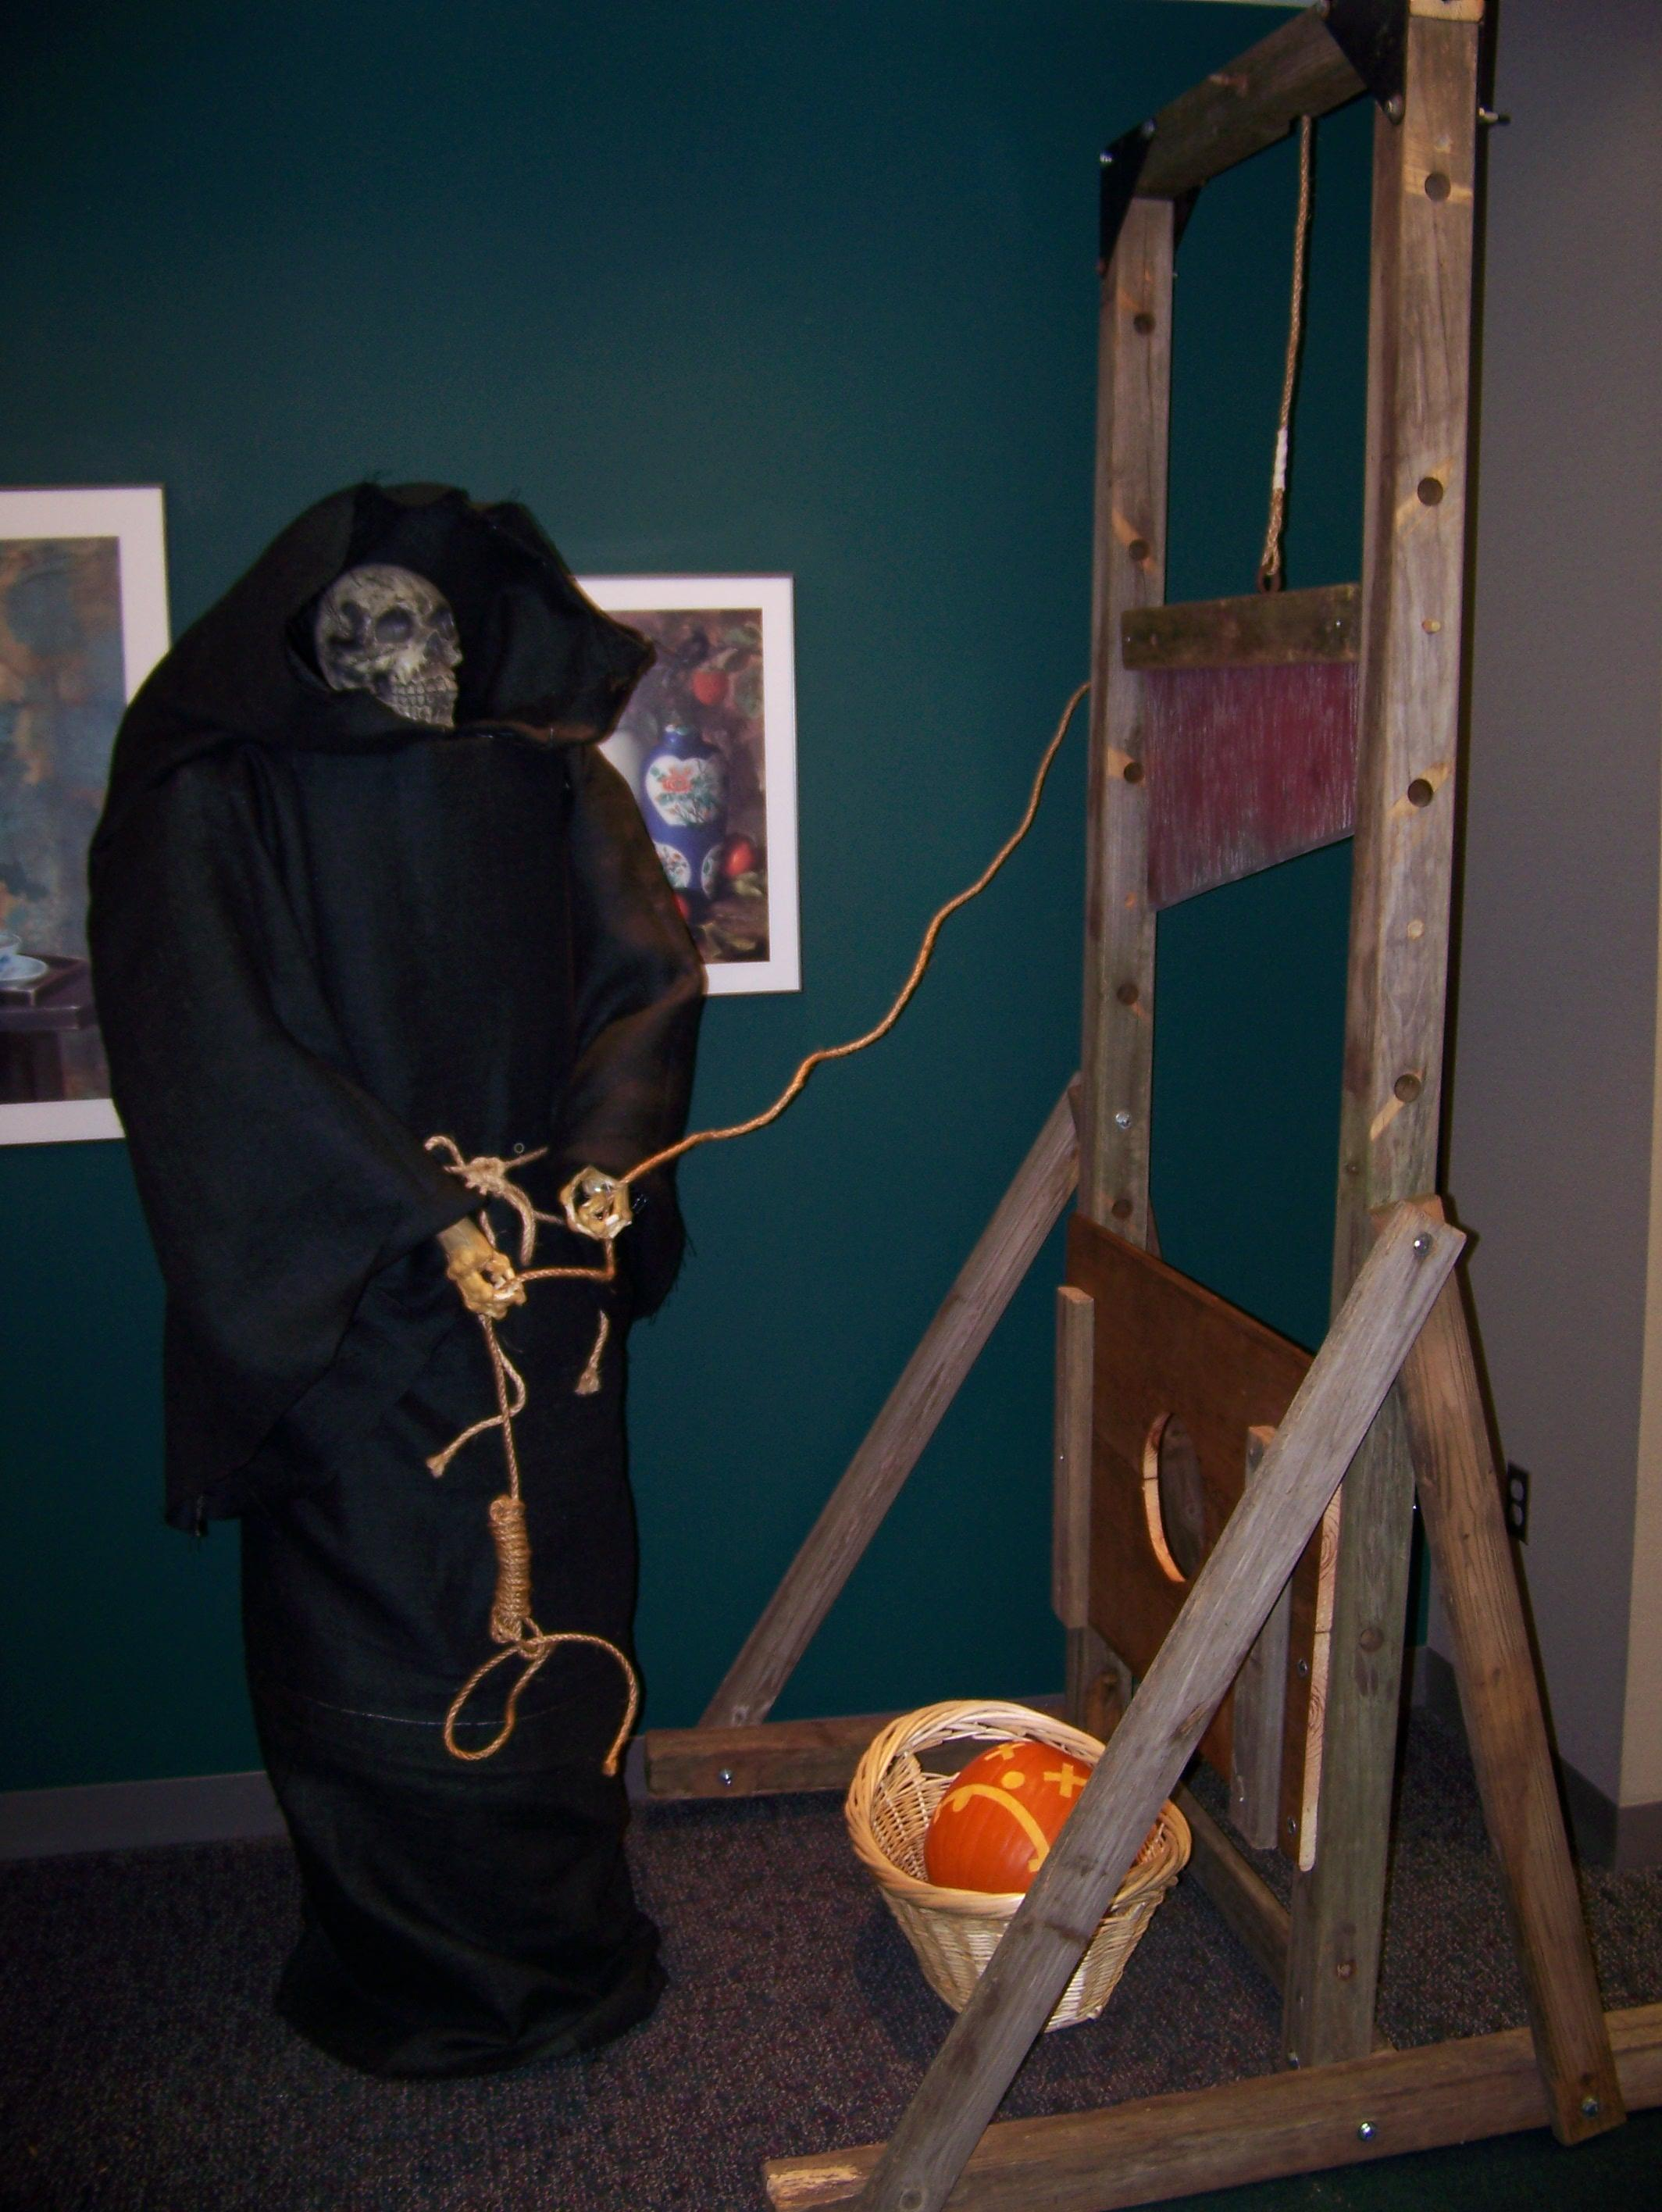 How to convert an old swingset into a guillotine prop for Halloween